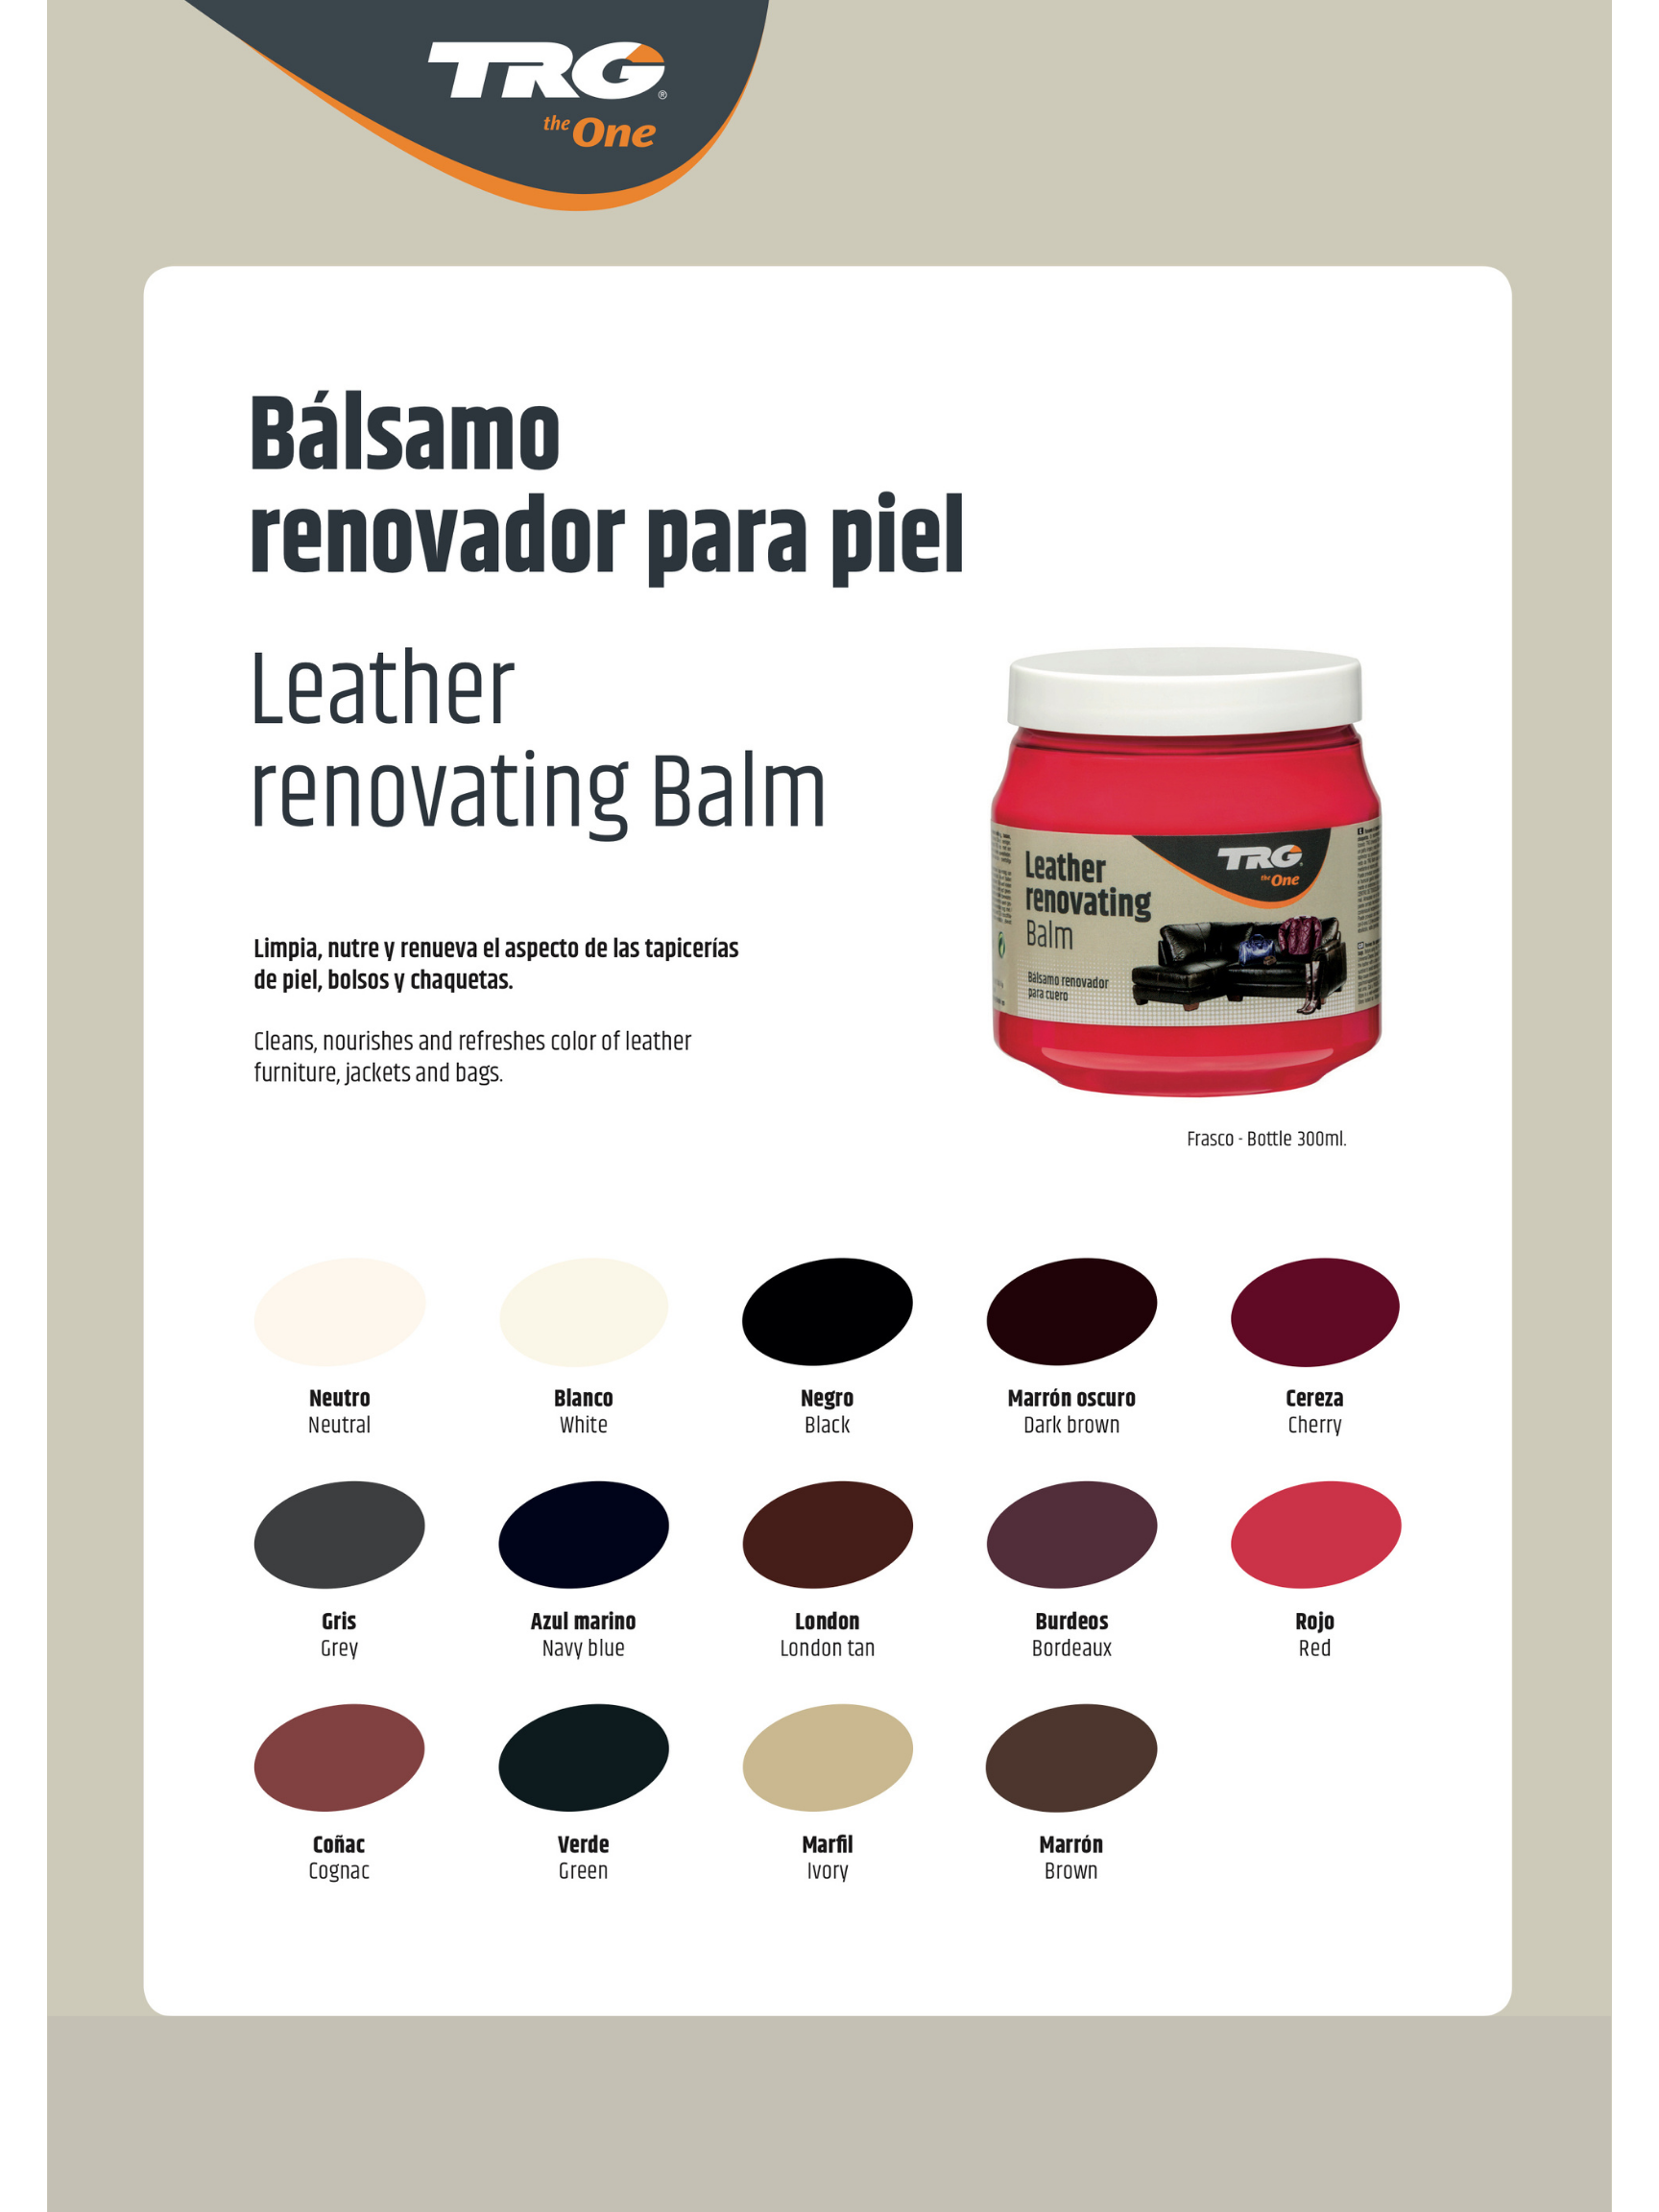 Leather Renovating Balm TRG the One VZORNÍK 2021